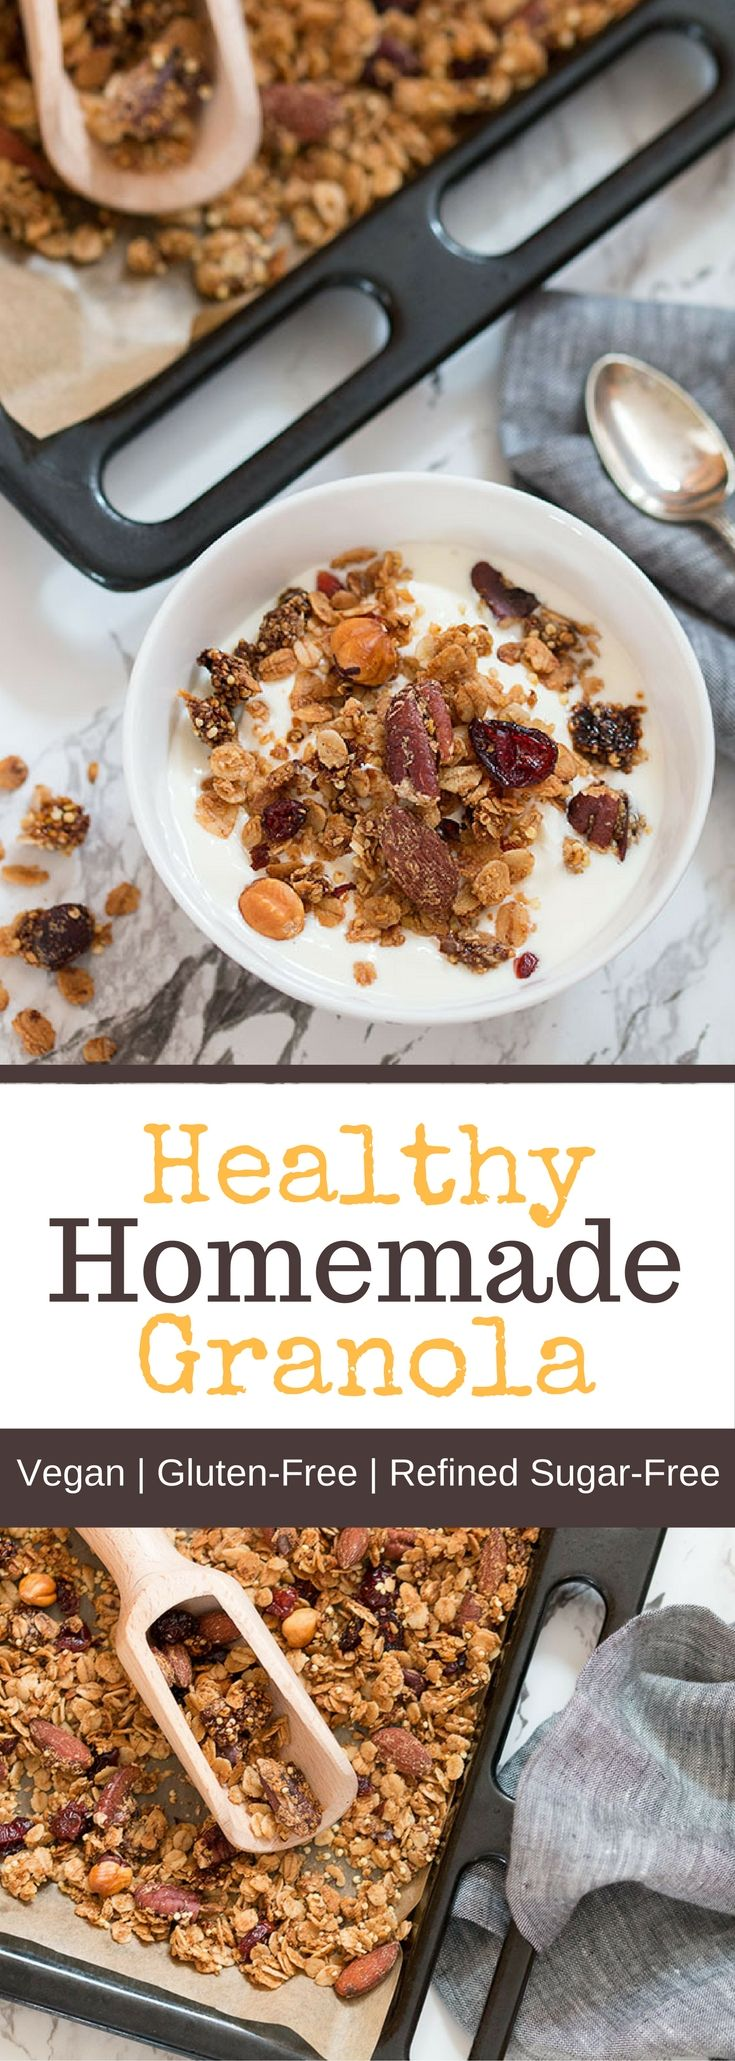 Homemade, healthy granola is super easy to make and gives you control over the amount of sugar and quality of ingredients. Granola is generally perceived as a healthy food but some brands can hide spoonfuls of sugar and fat amid the more wholesome nuts and oats. But it doesn't have to be that way, if you make your own you have total control and you can play around with different flavours. What's your favourite ingredient in granola?